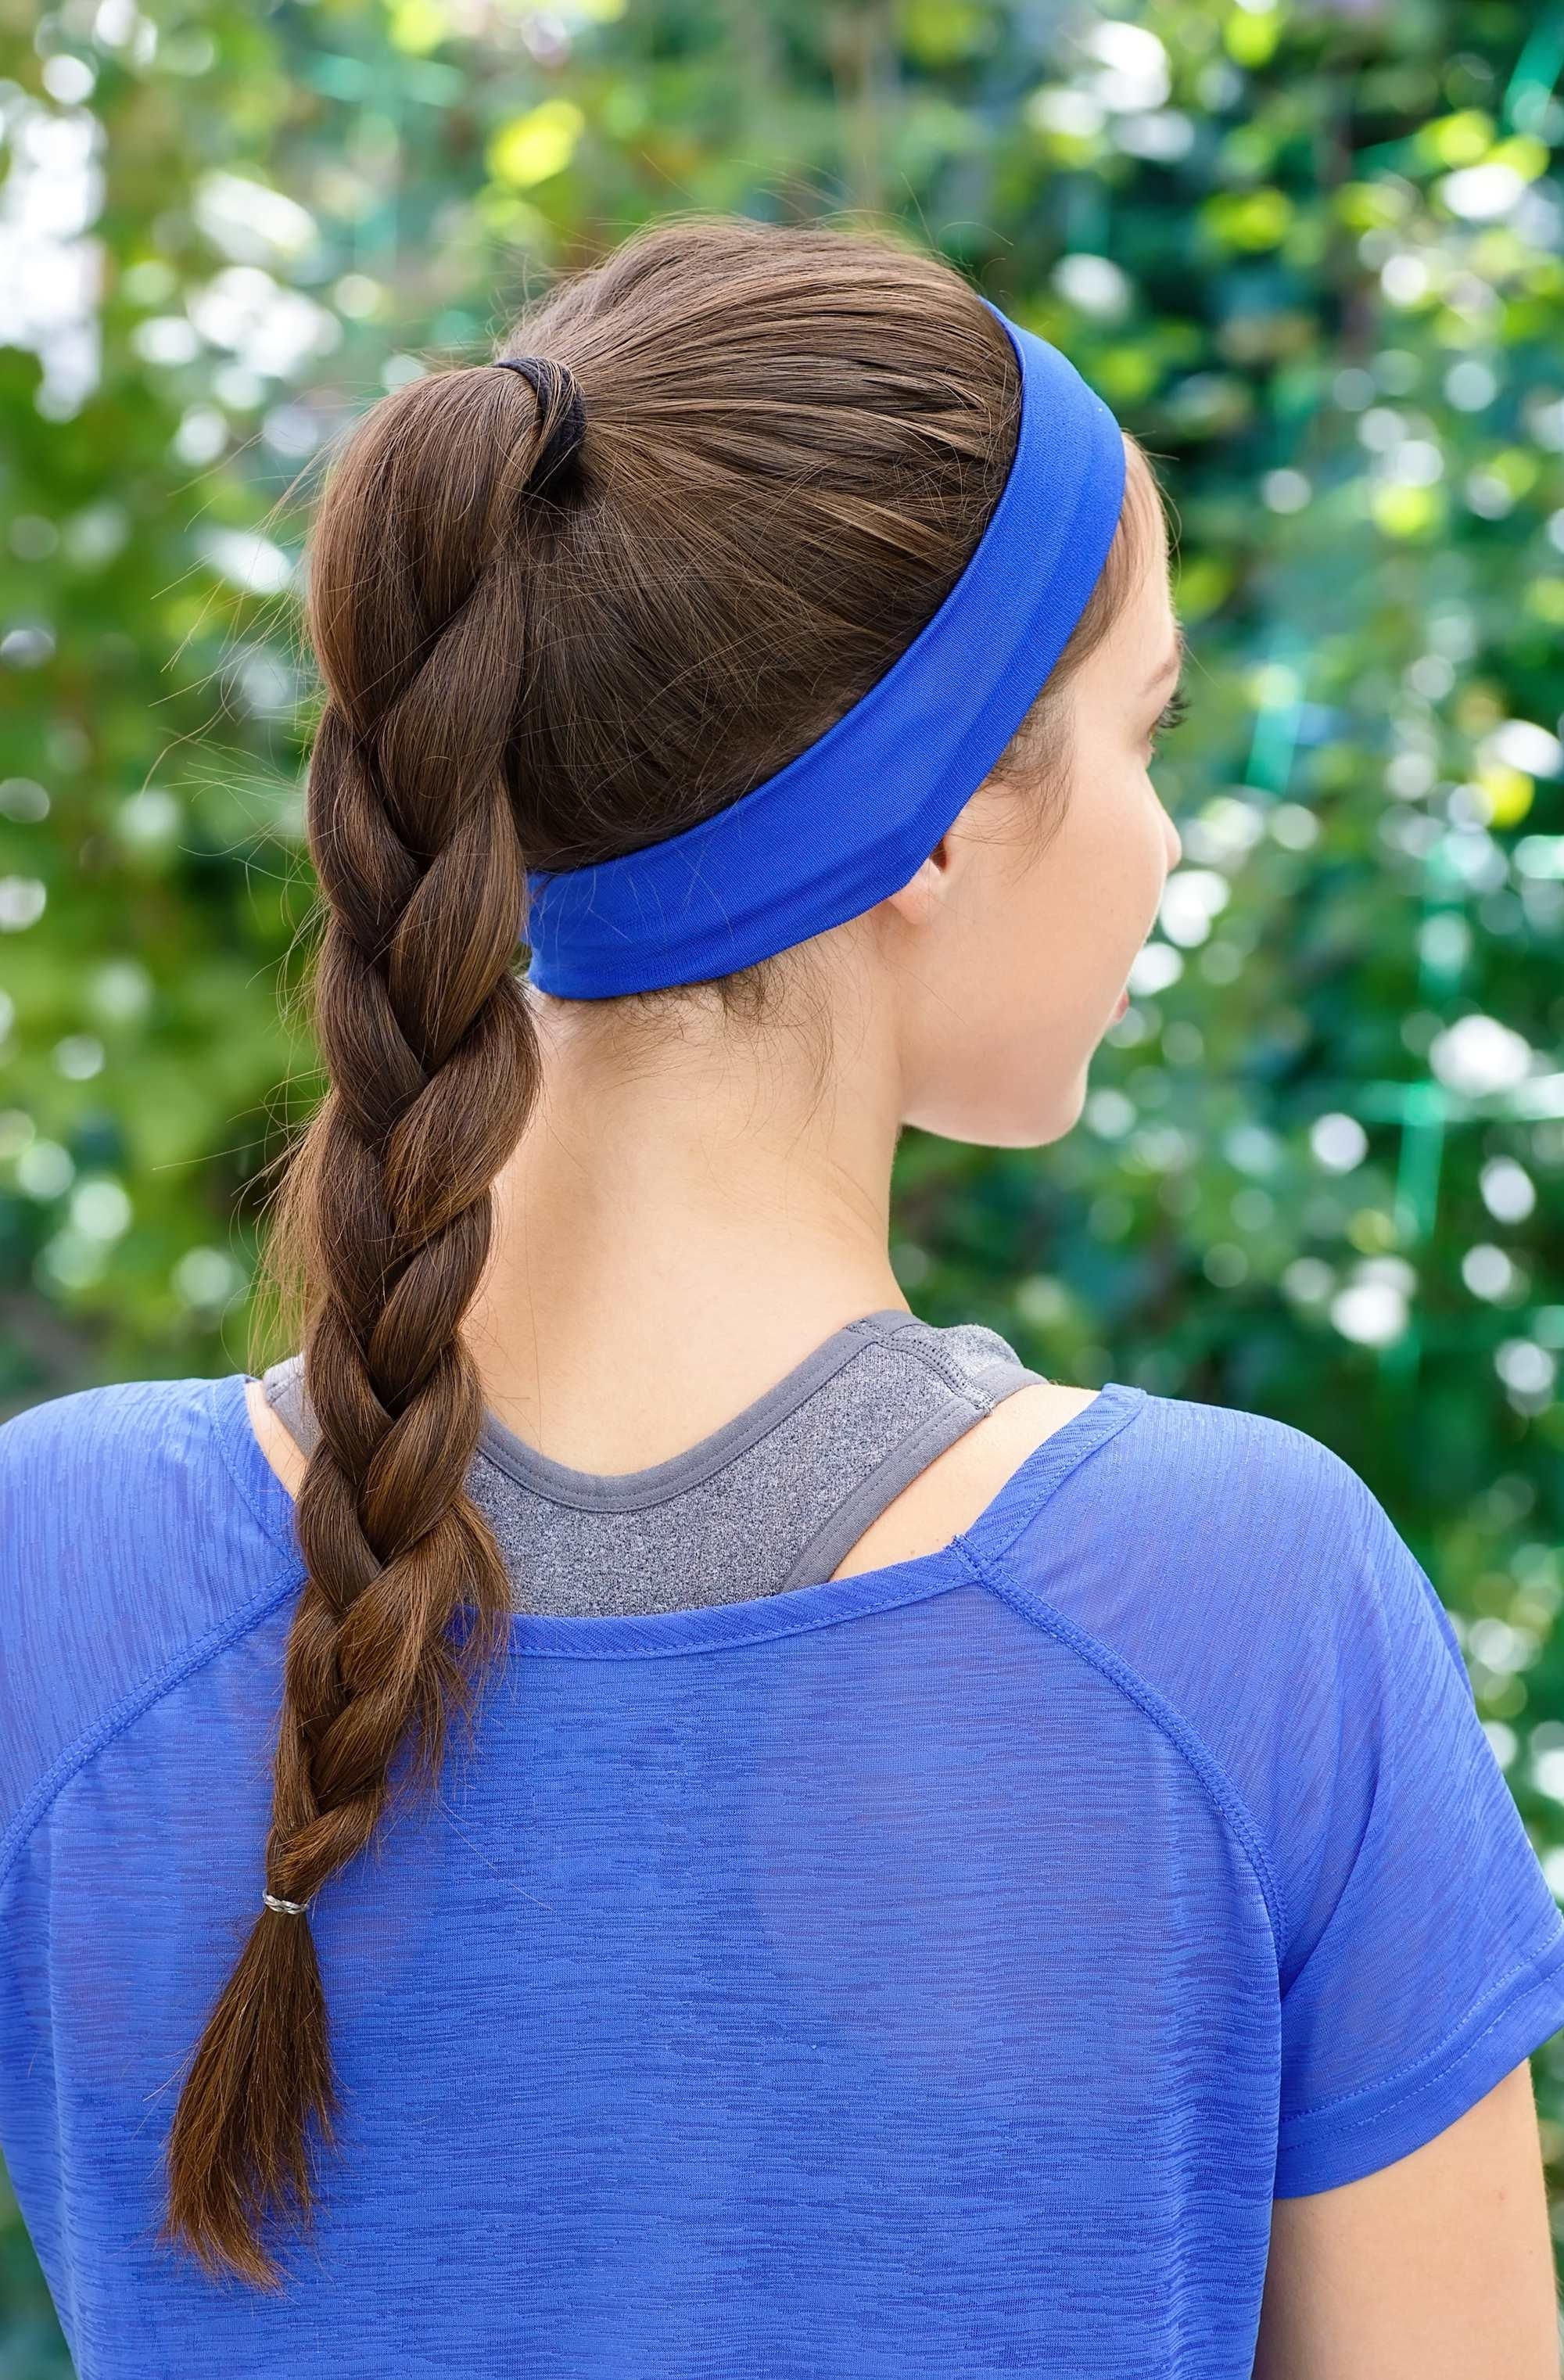 Most Recent Ponytail Braids With Quirky Hair Accessory For Braided Ponytail: How To Create This Easy Hairstyle For The Gym (View 9 of 15)